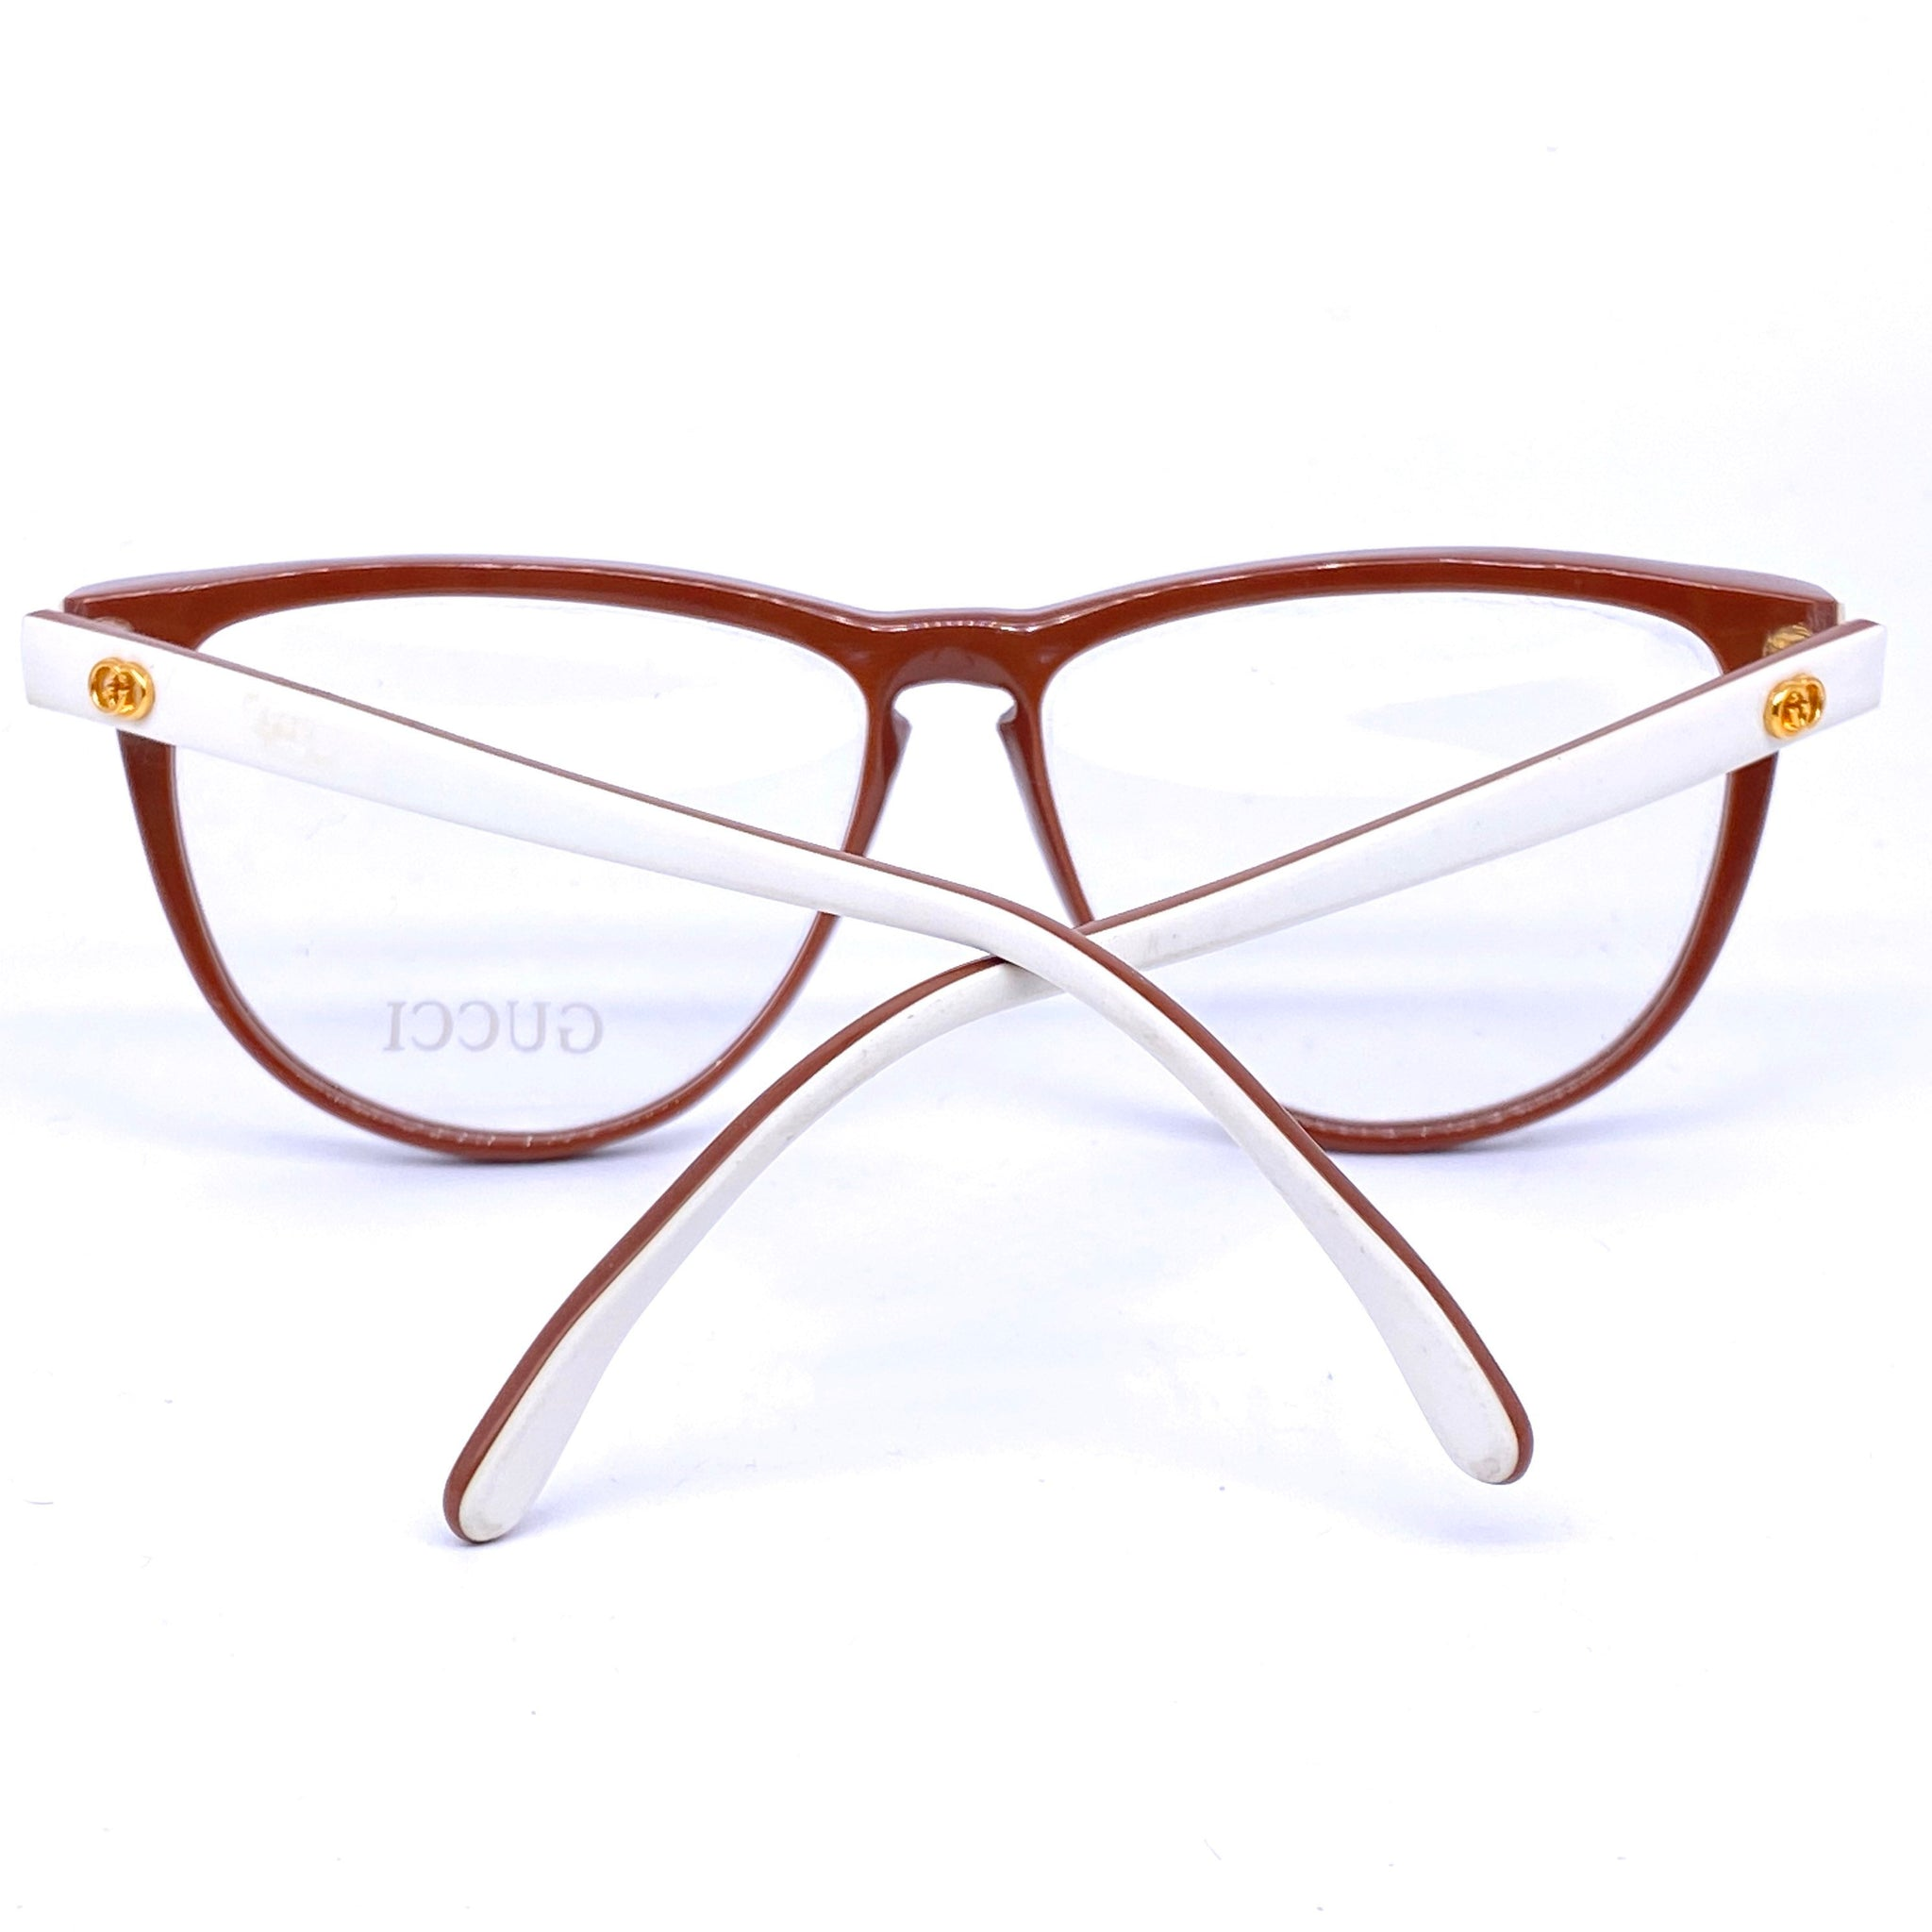 Gucci GG25 bown/white cateye oversized ladies eyeglasses frames, 1980s NoS - viceversashop